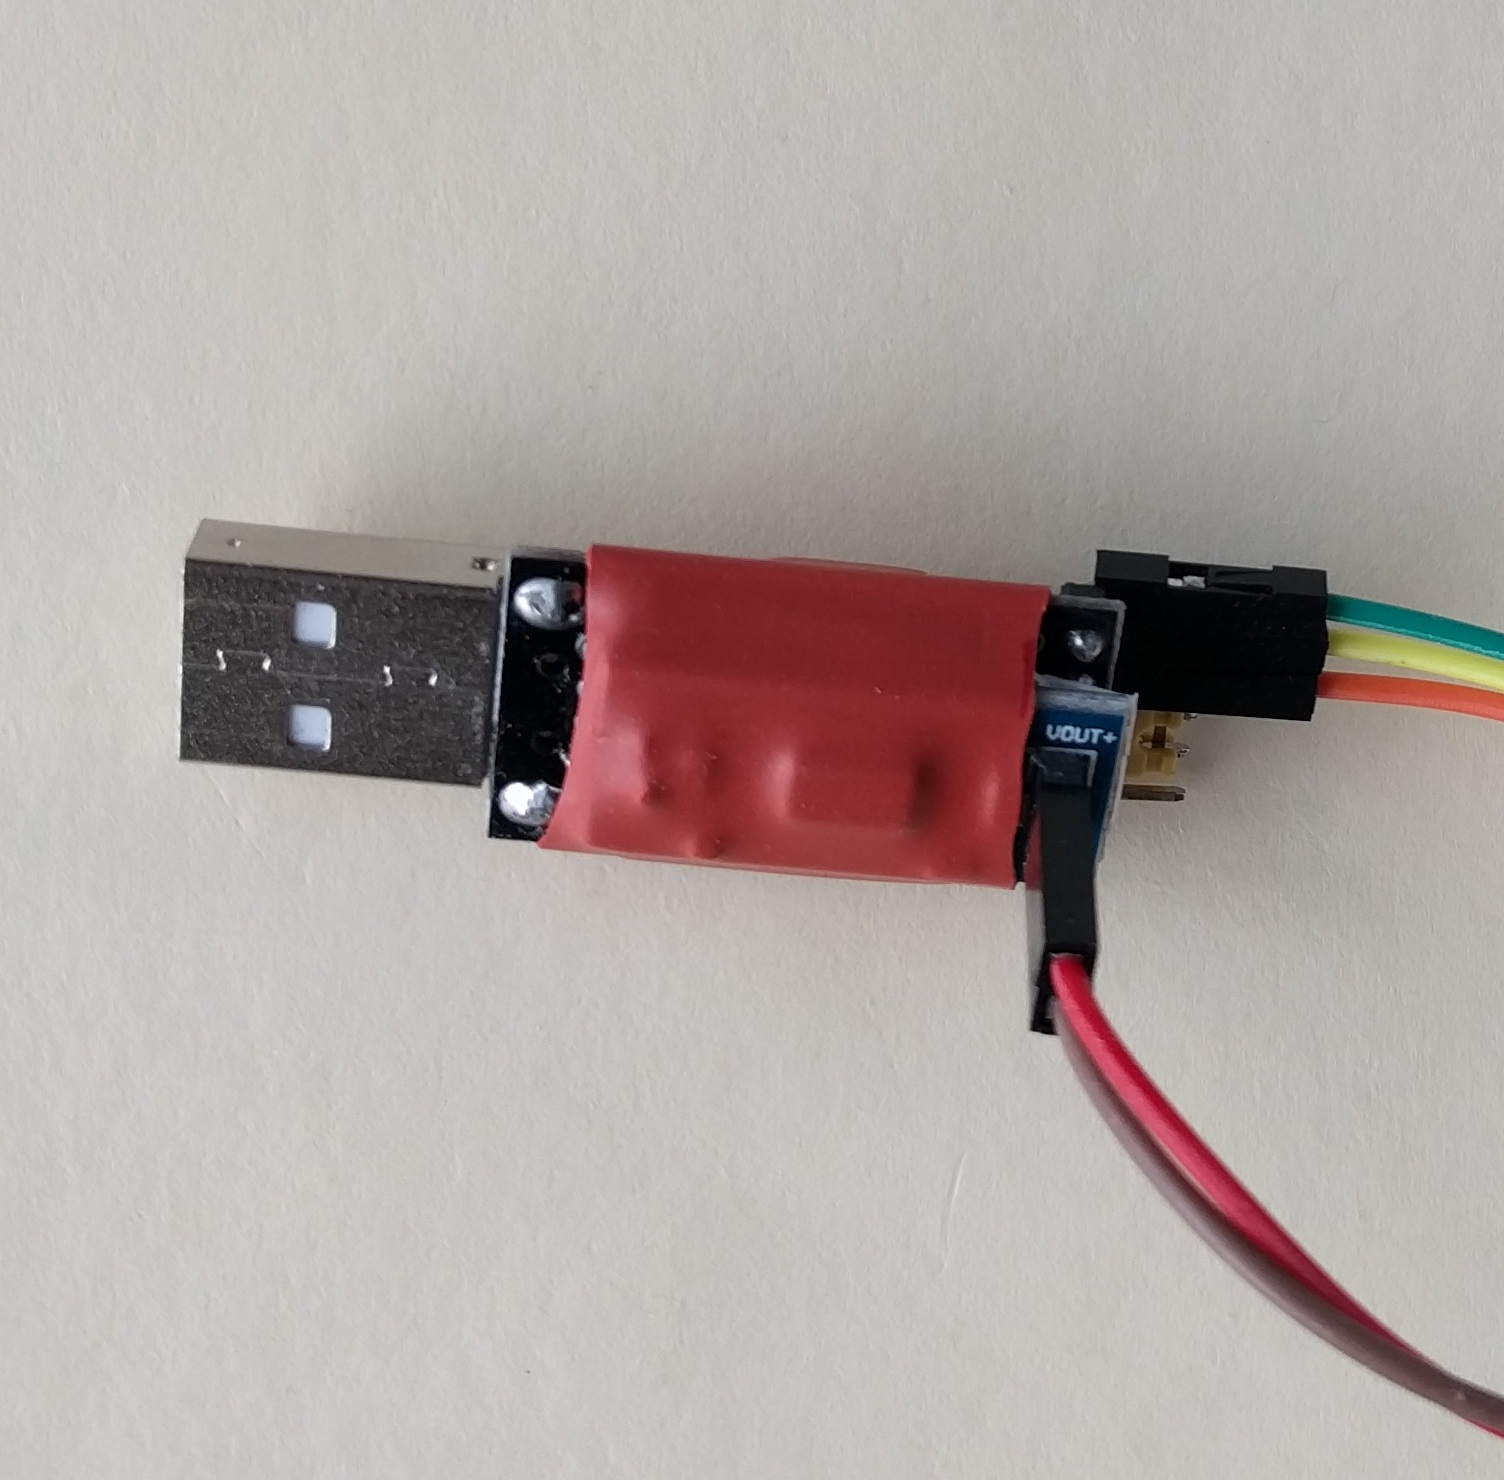 Picture of $1 USB to UART-serial Flashing Device (dongle) With 3.3 V Power Supply for ESP8266MOD ESP-12 Module